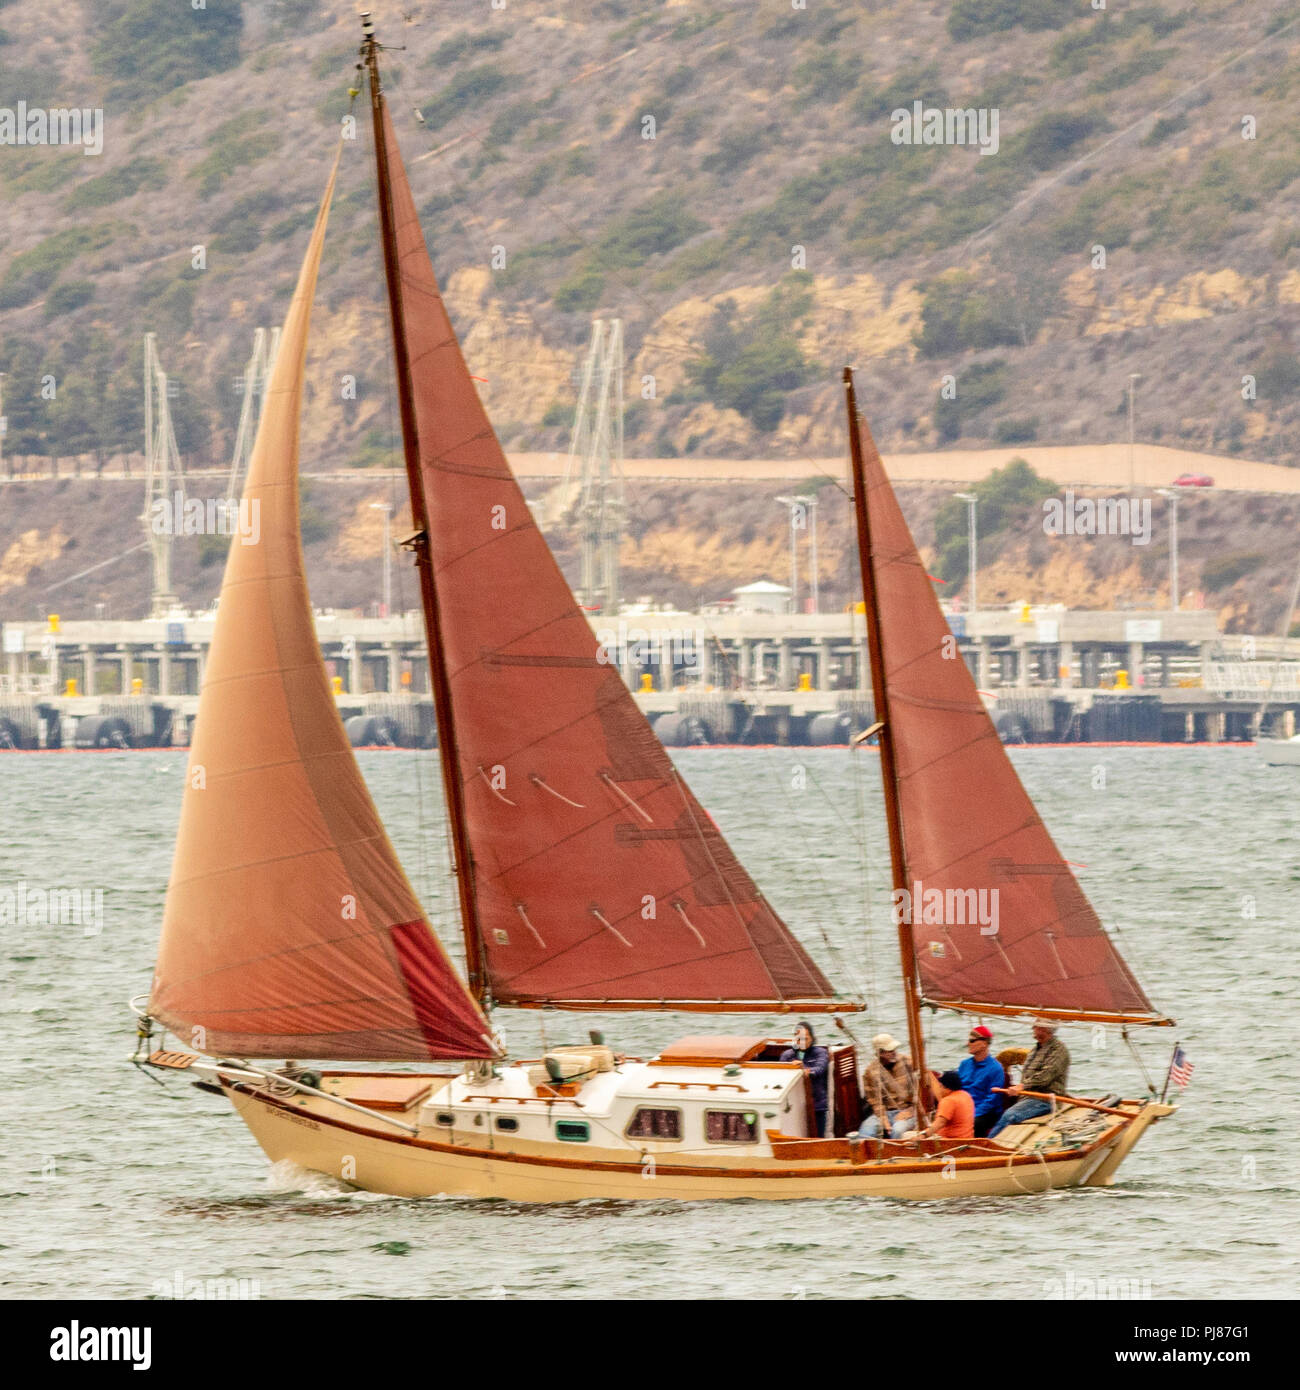 A classic ketch with tanbark sails, works upwind on a fine day - Stock Image